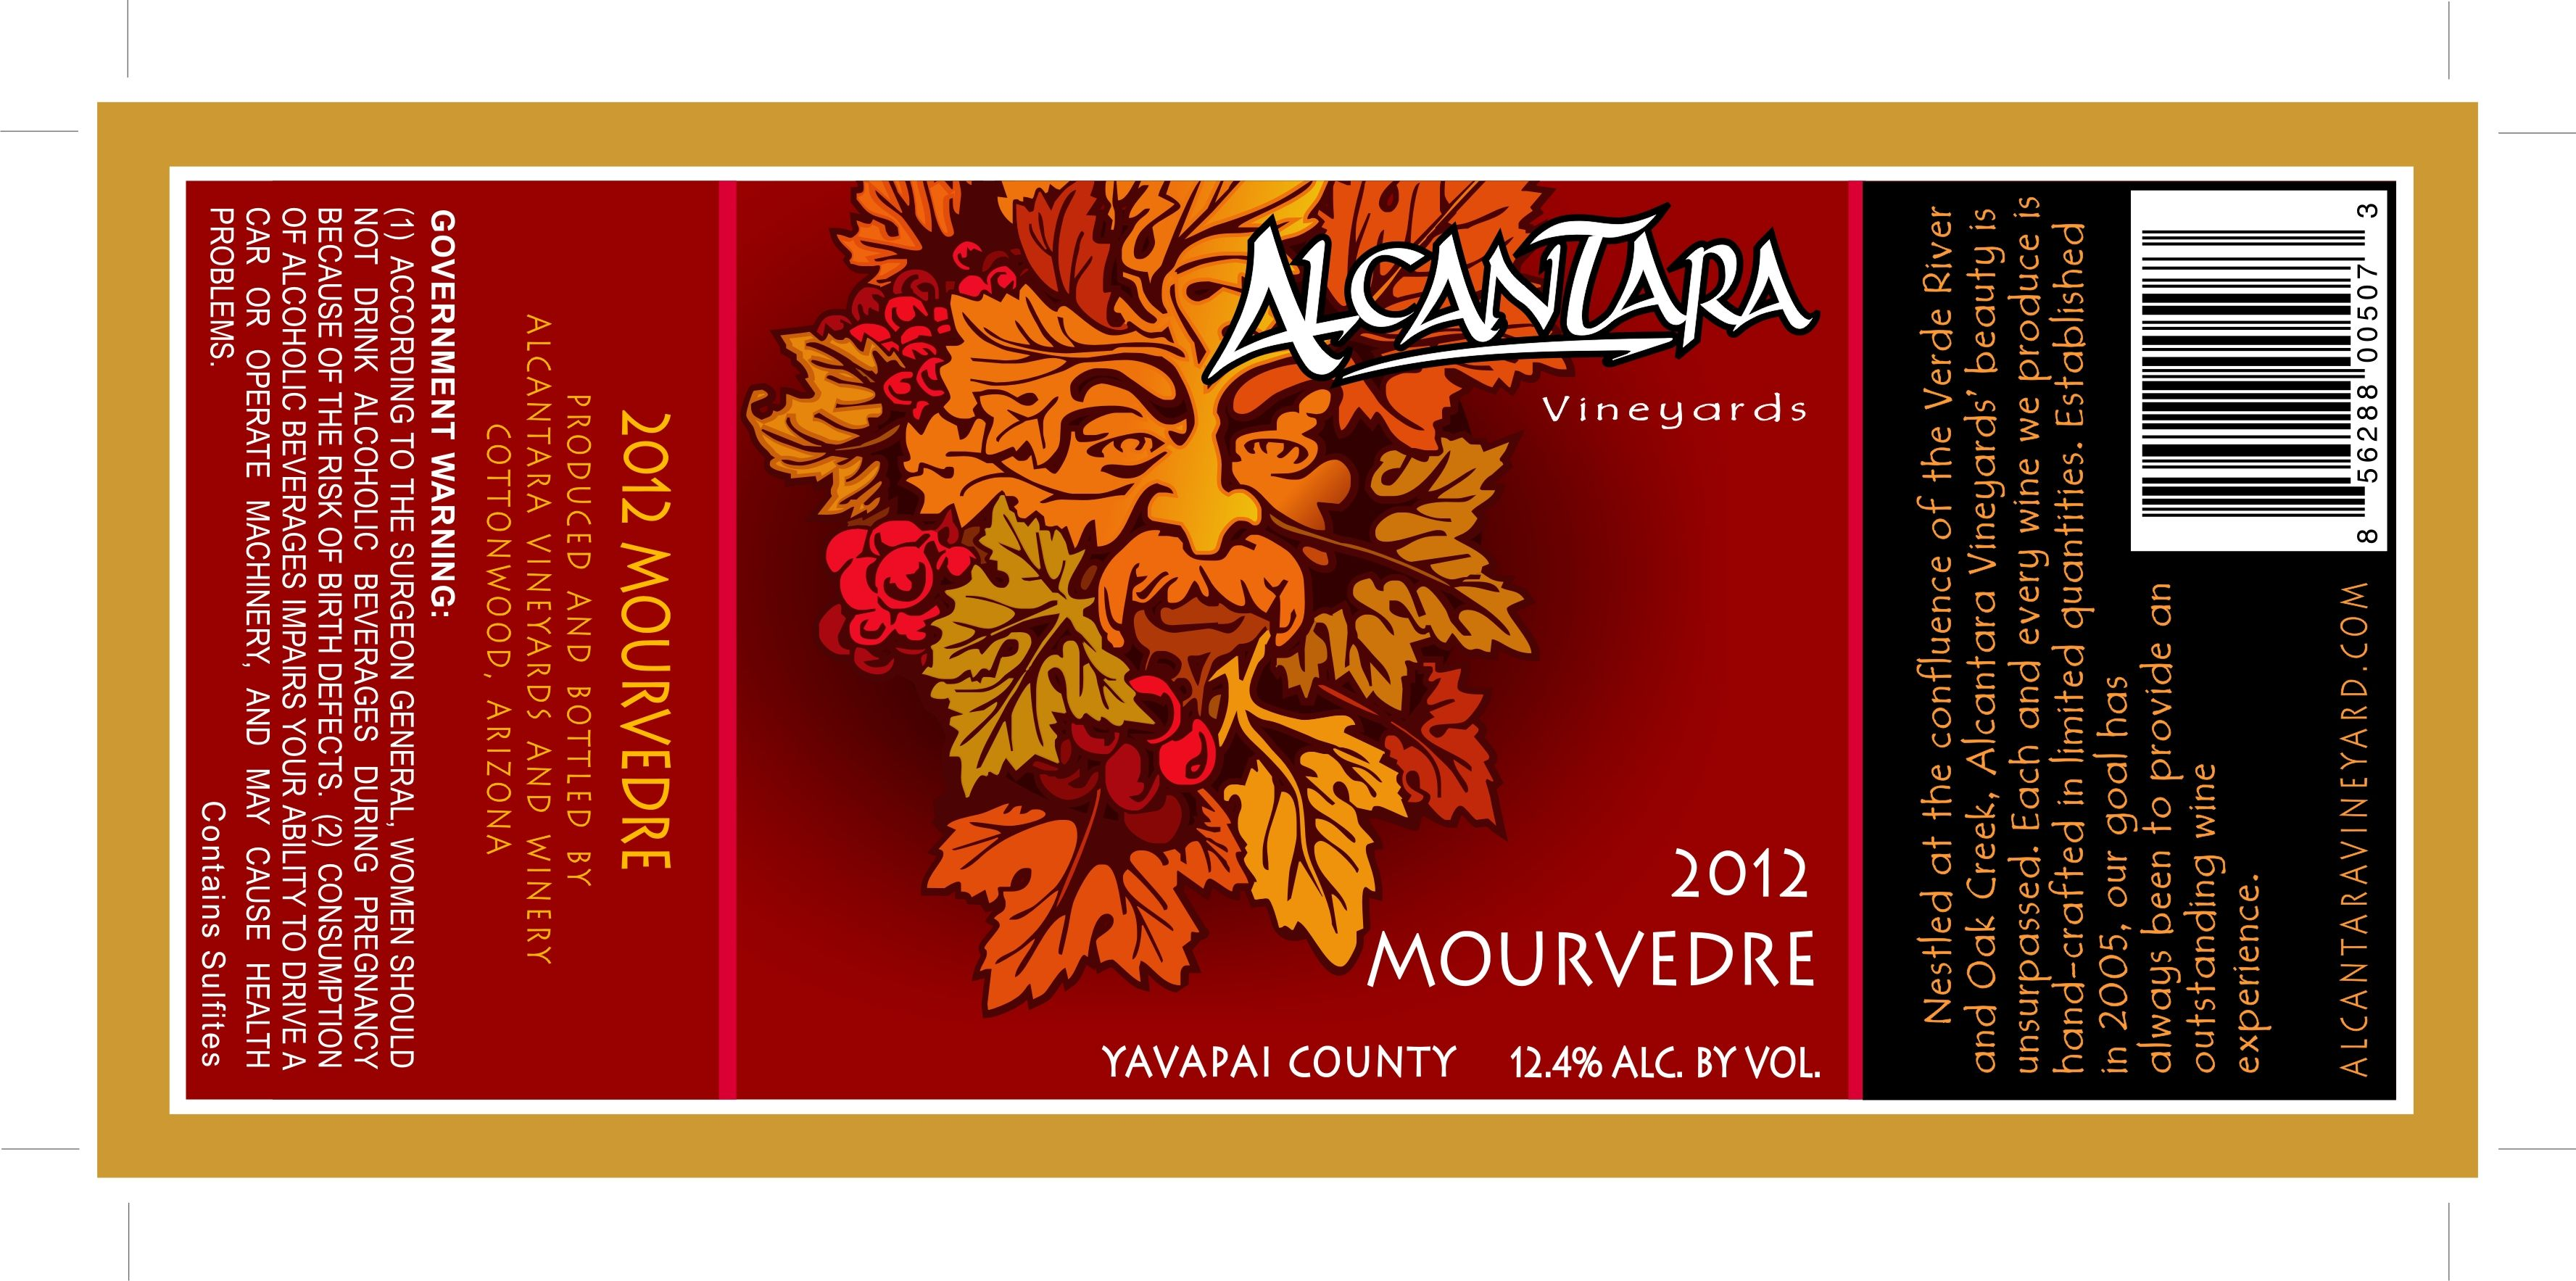 Alcantara Vineyards 2012 Mourvedre Winery Tours Vineyard Zinfandel